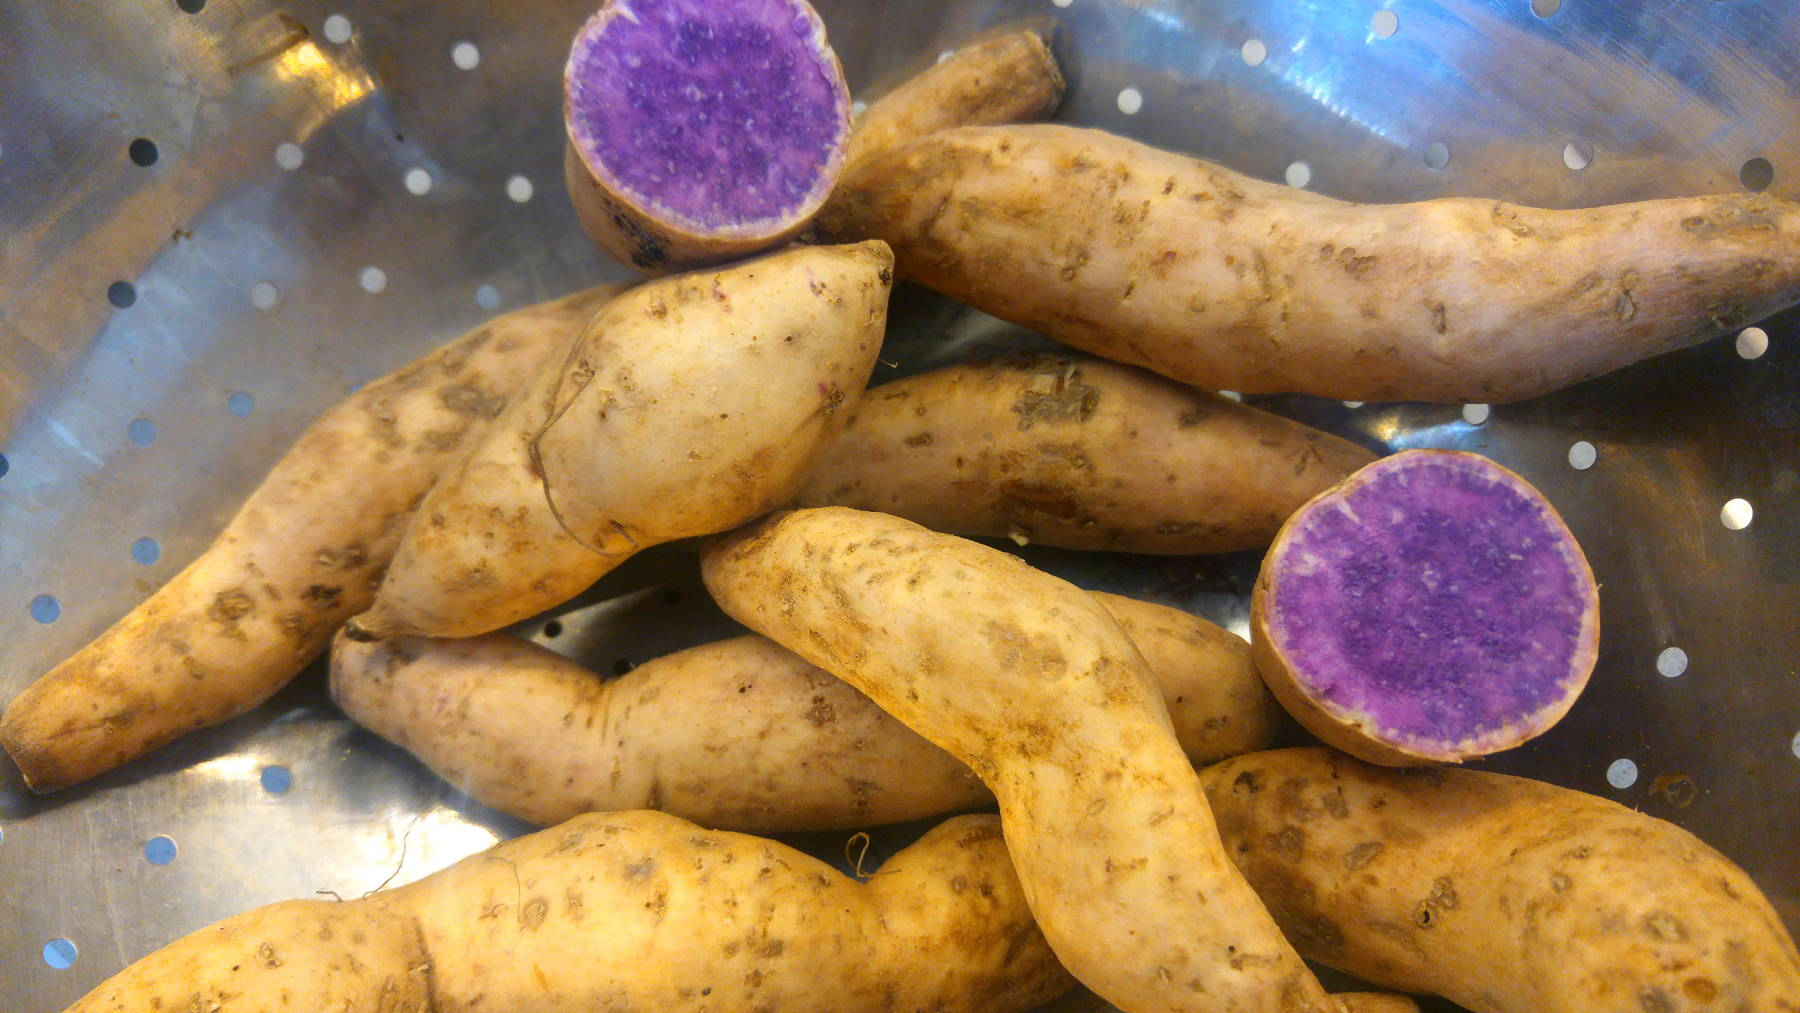 Okinawa purple yams